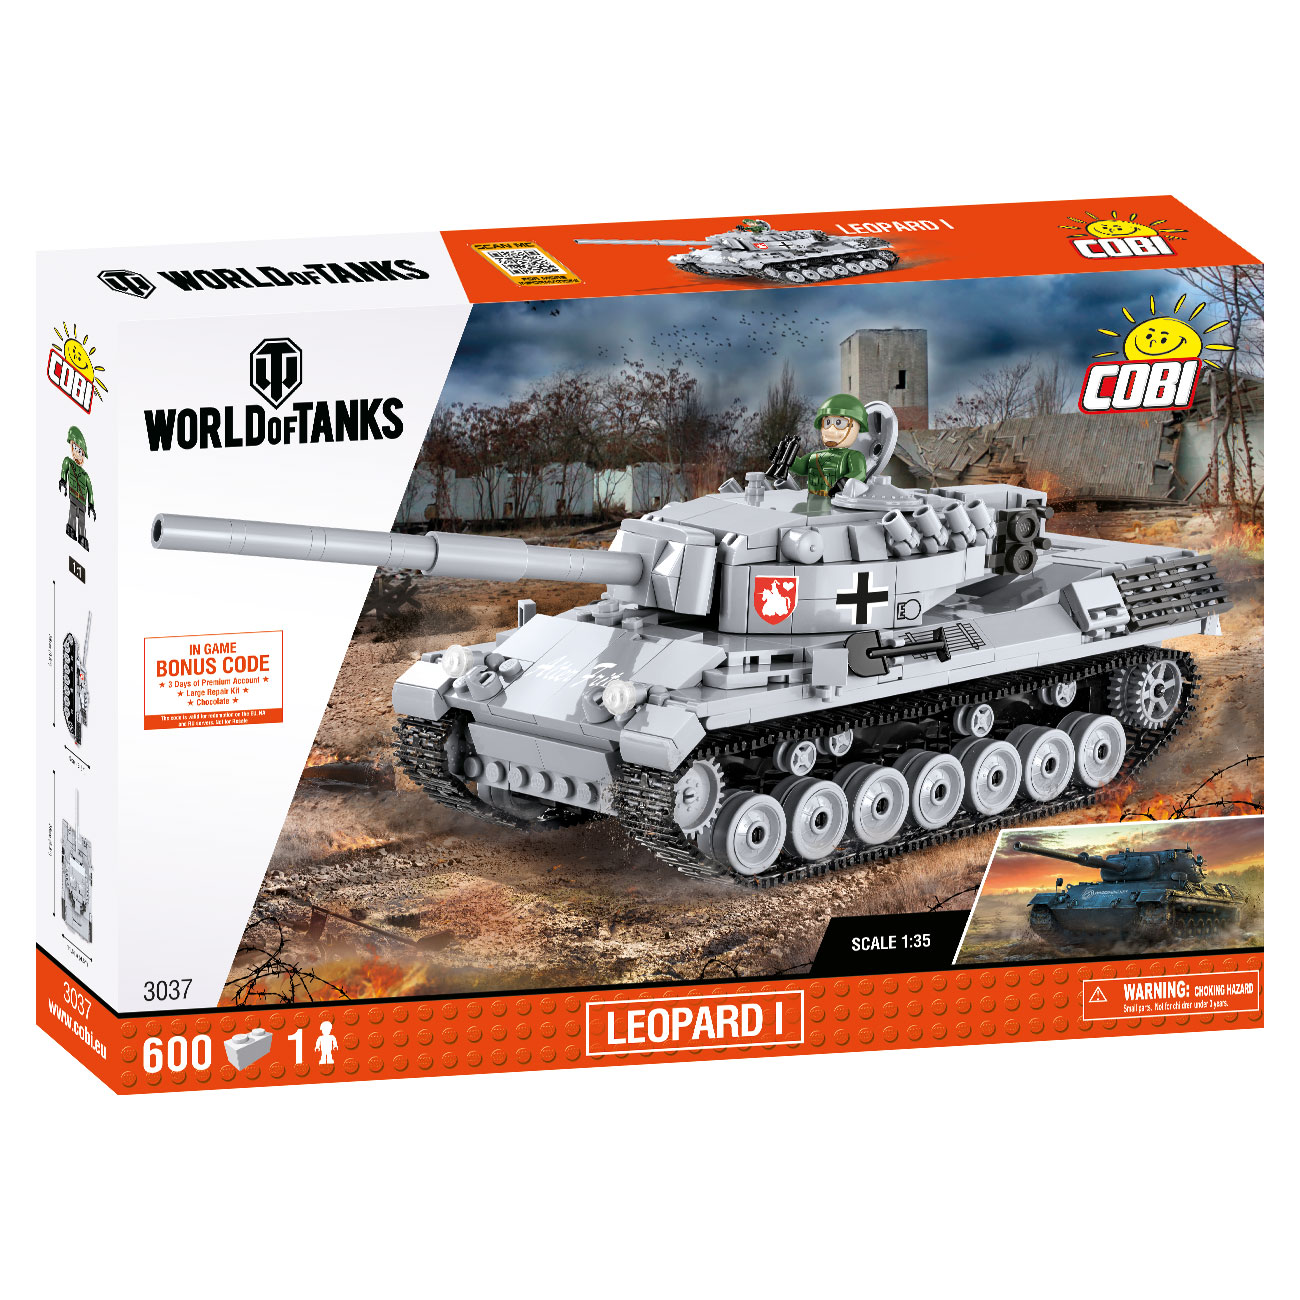 Cobi World Of Tanks Small Army Bausatz Panzer Leopard I 600 Teile 3037 2